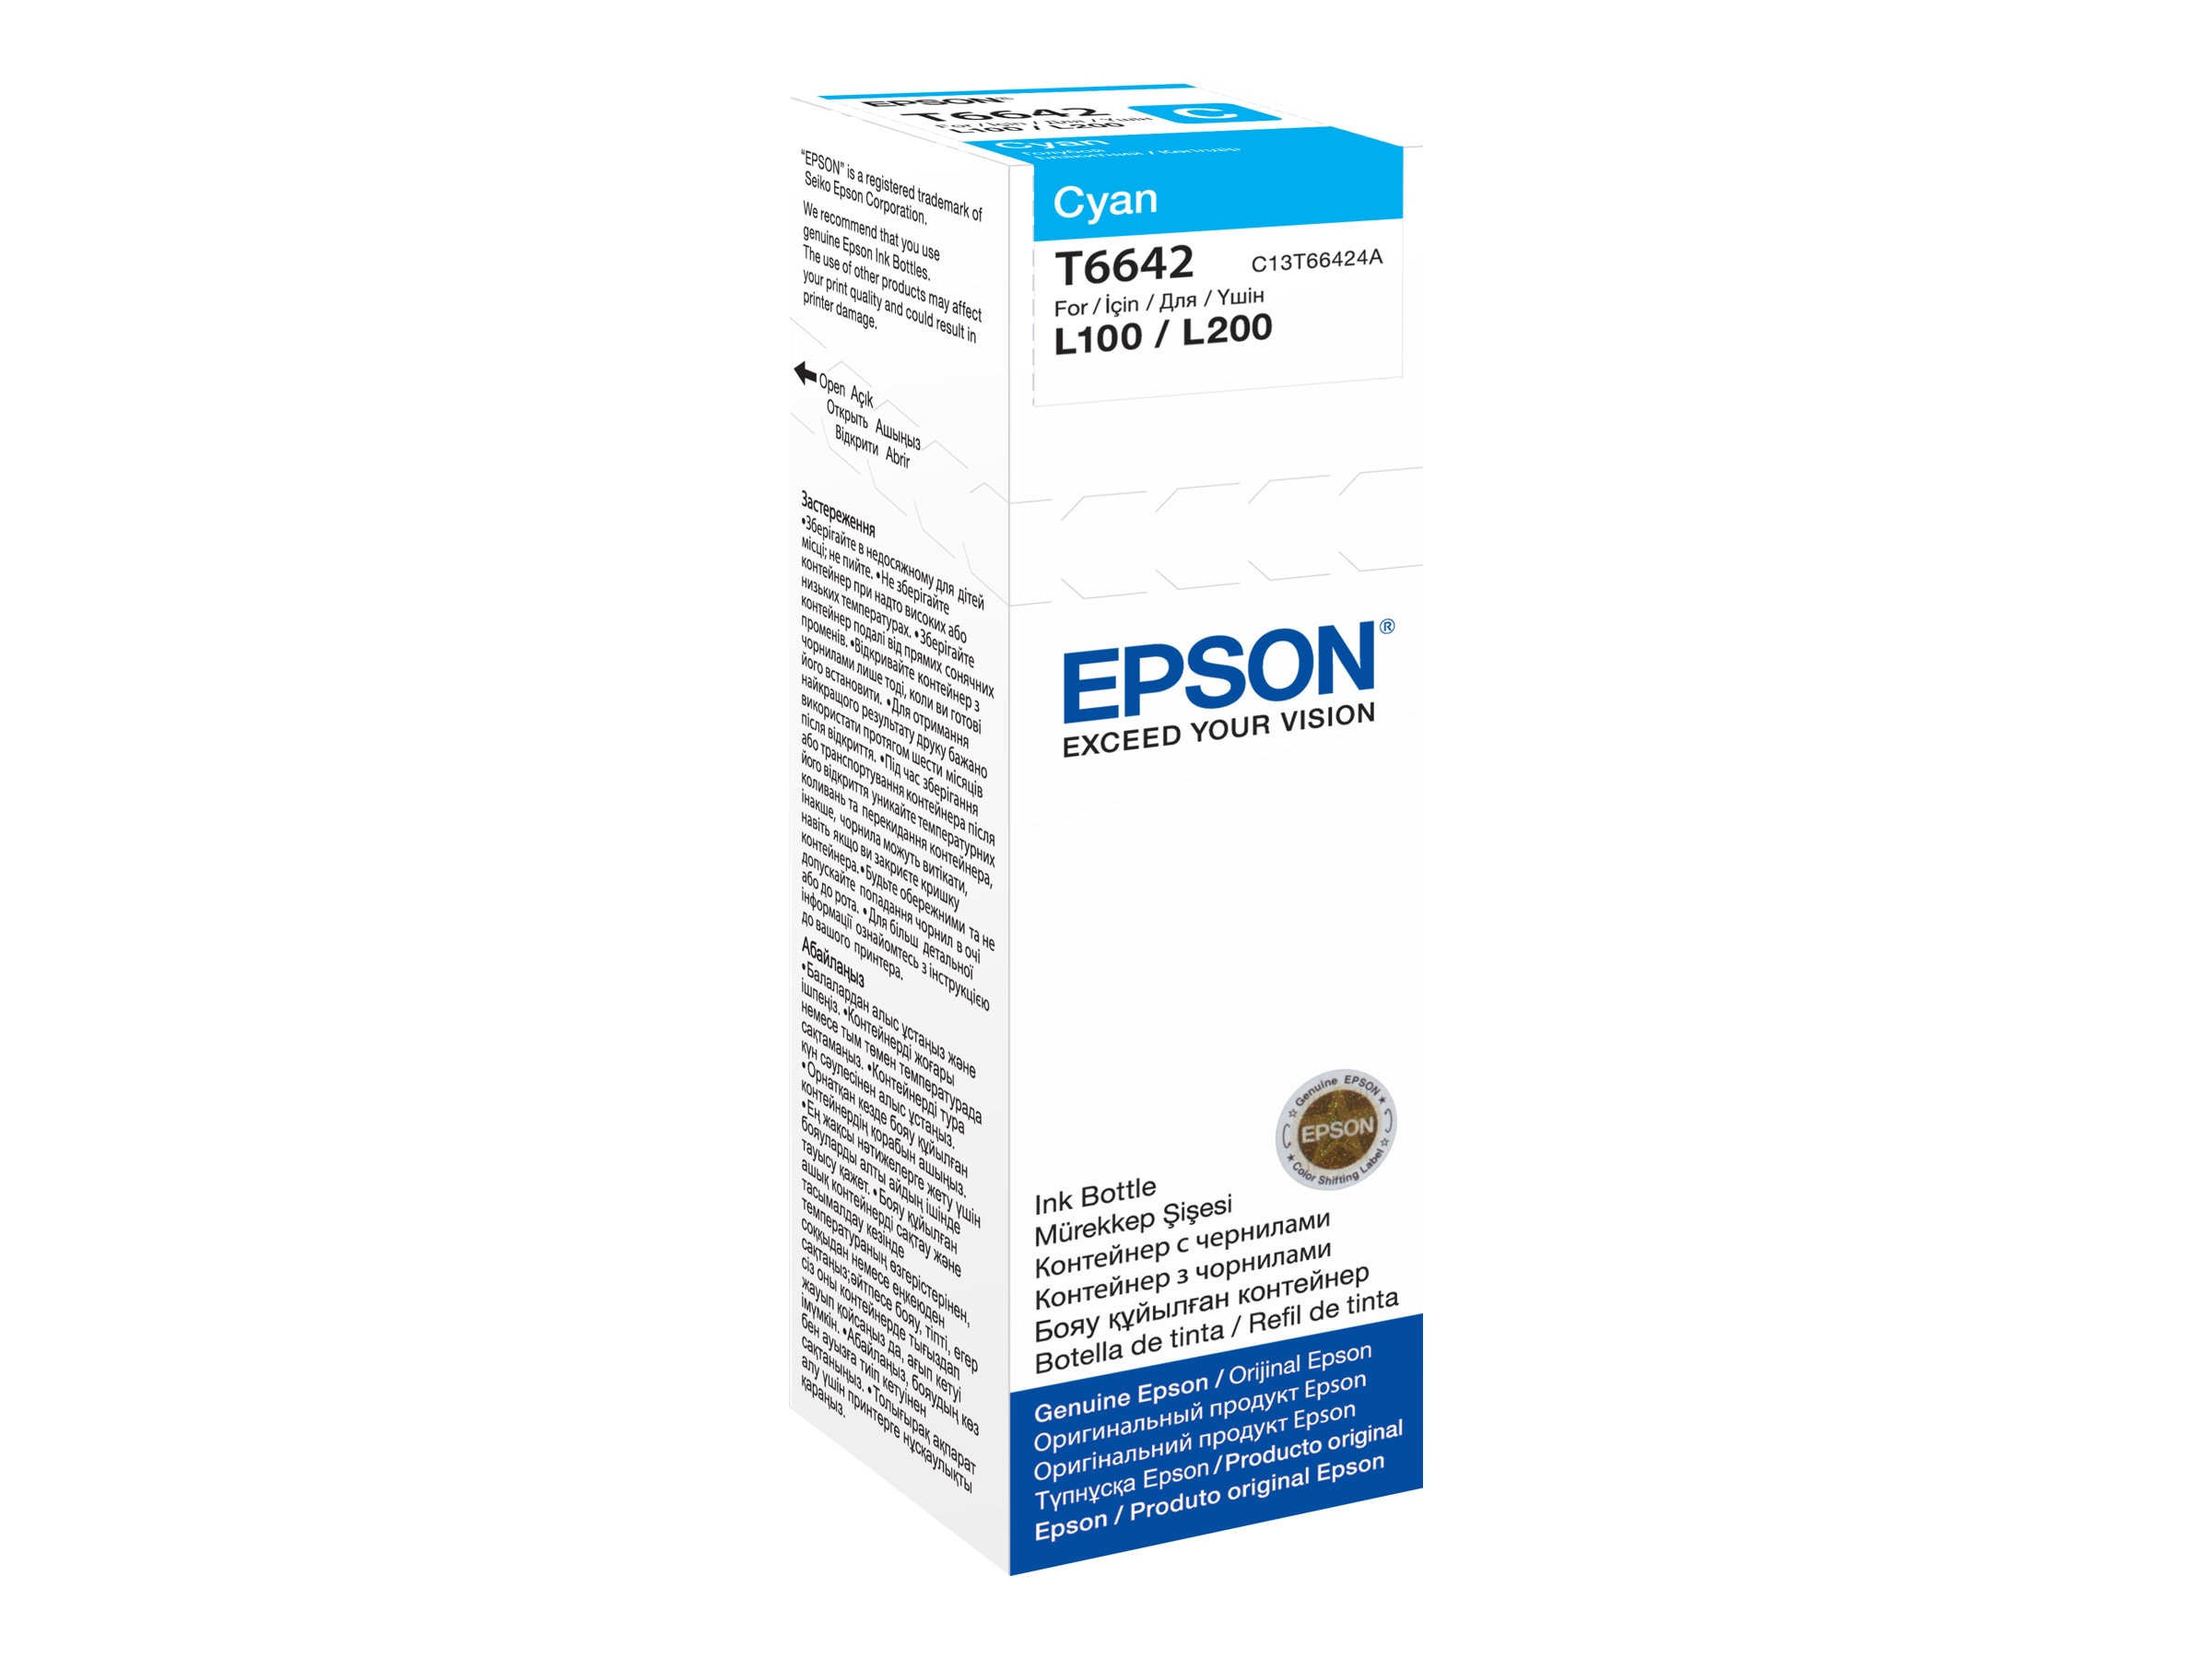 Epson Cyan T664 Ink Bottle, T664220, 29832951, Ink Cartridges & Ink Refill Kits